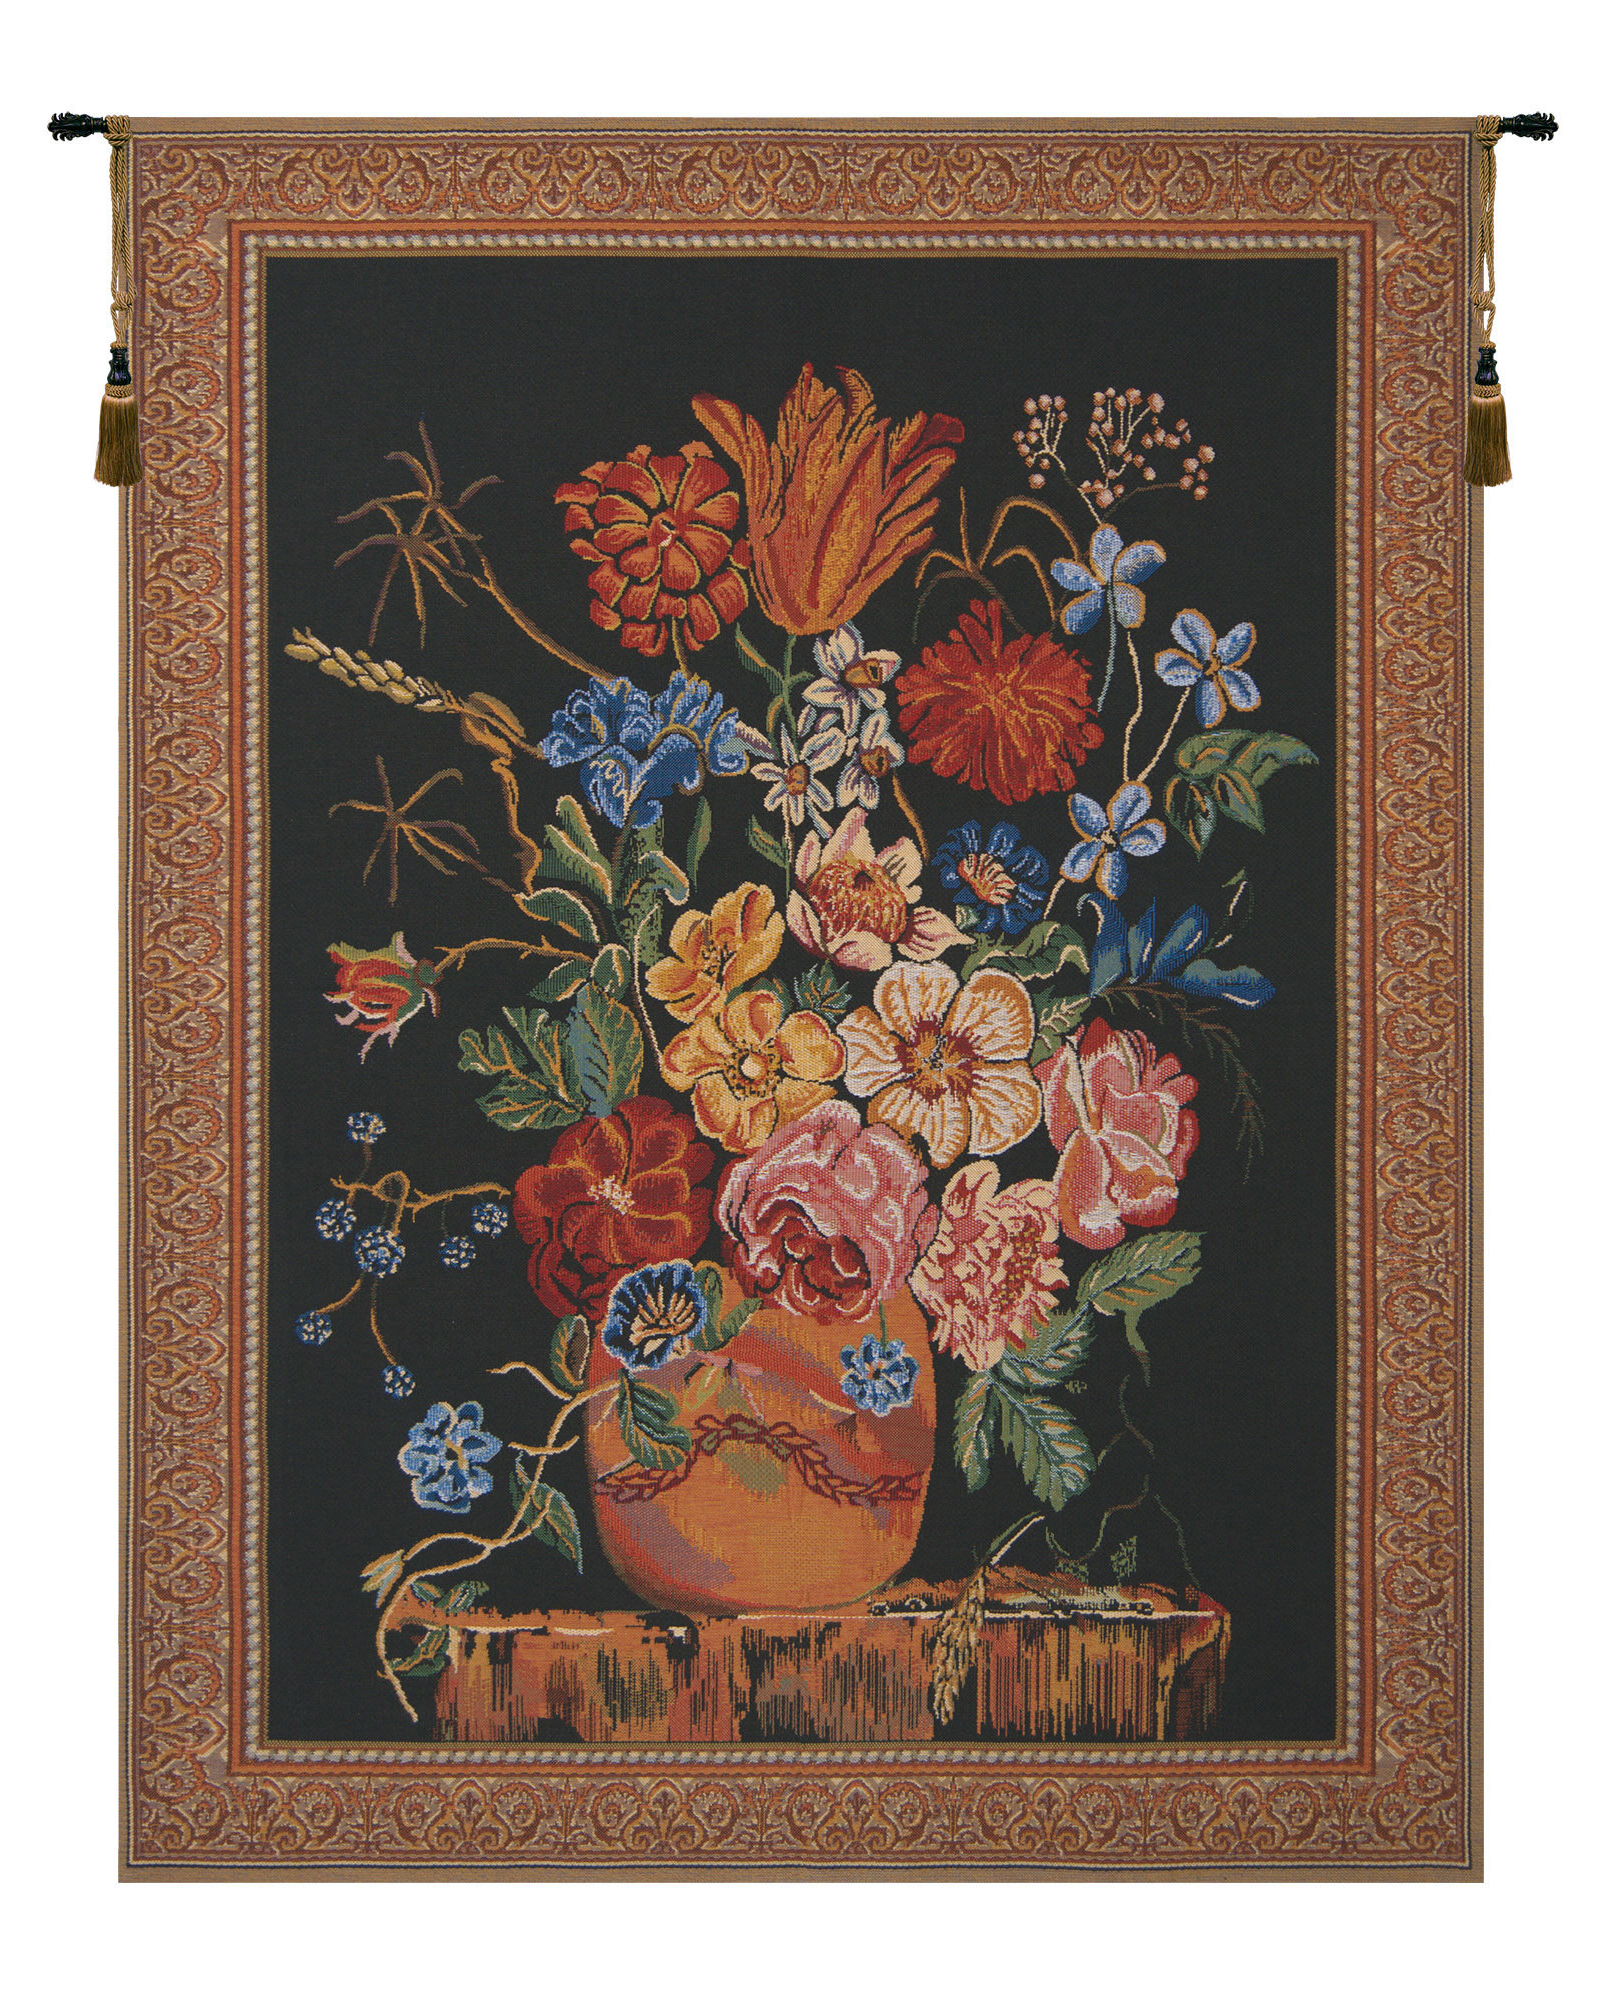 Well Known Verendael Terracotta Wall Hanging Regarding Blended Fabric Ethereal Days Chinoiserie Wall Hangings With Rod (View 5 of 20)